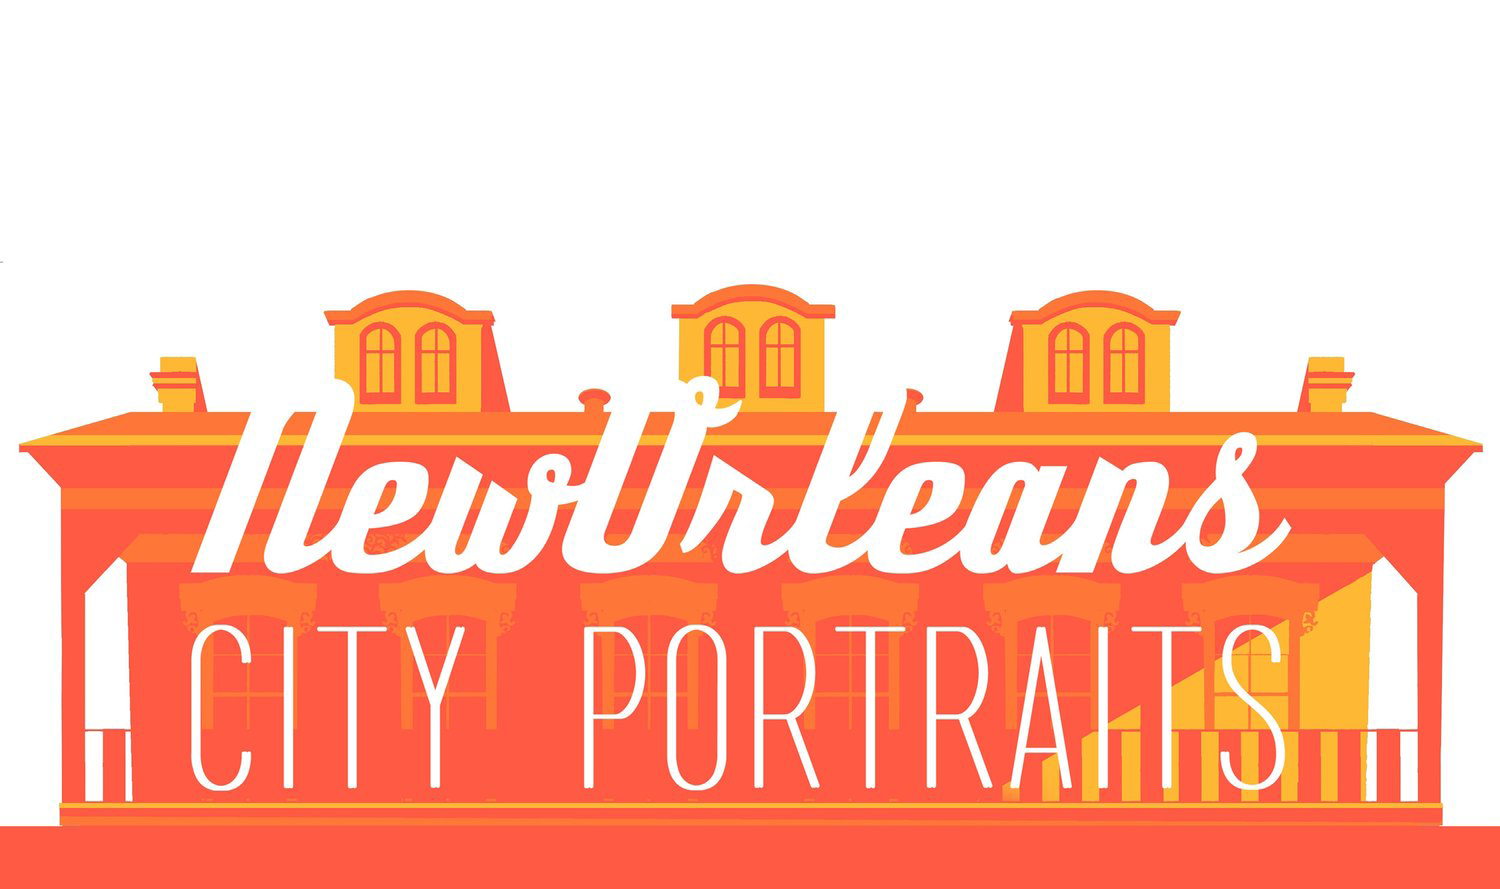 New Orleans City Portraits